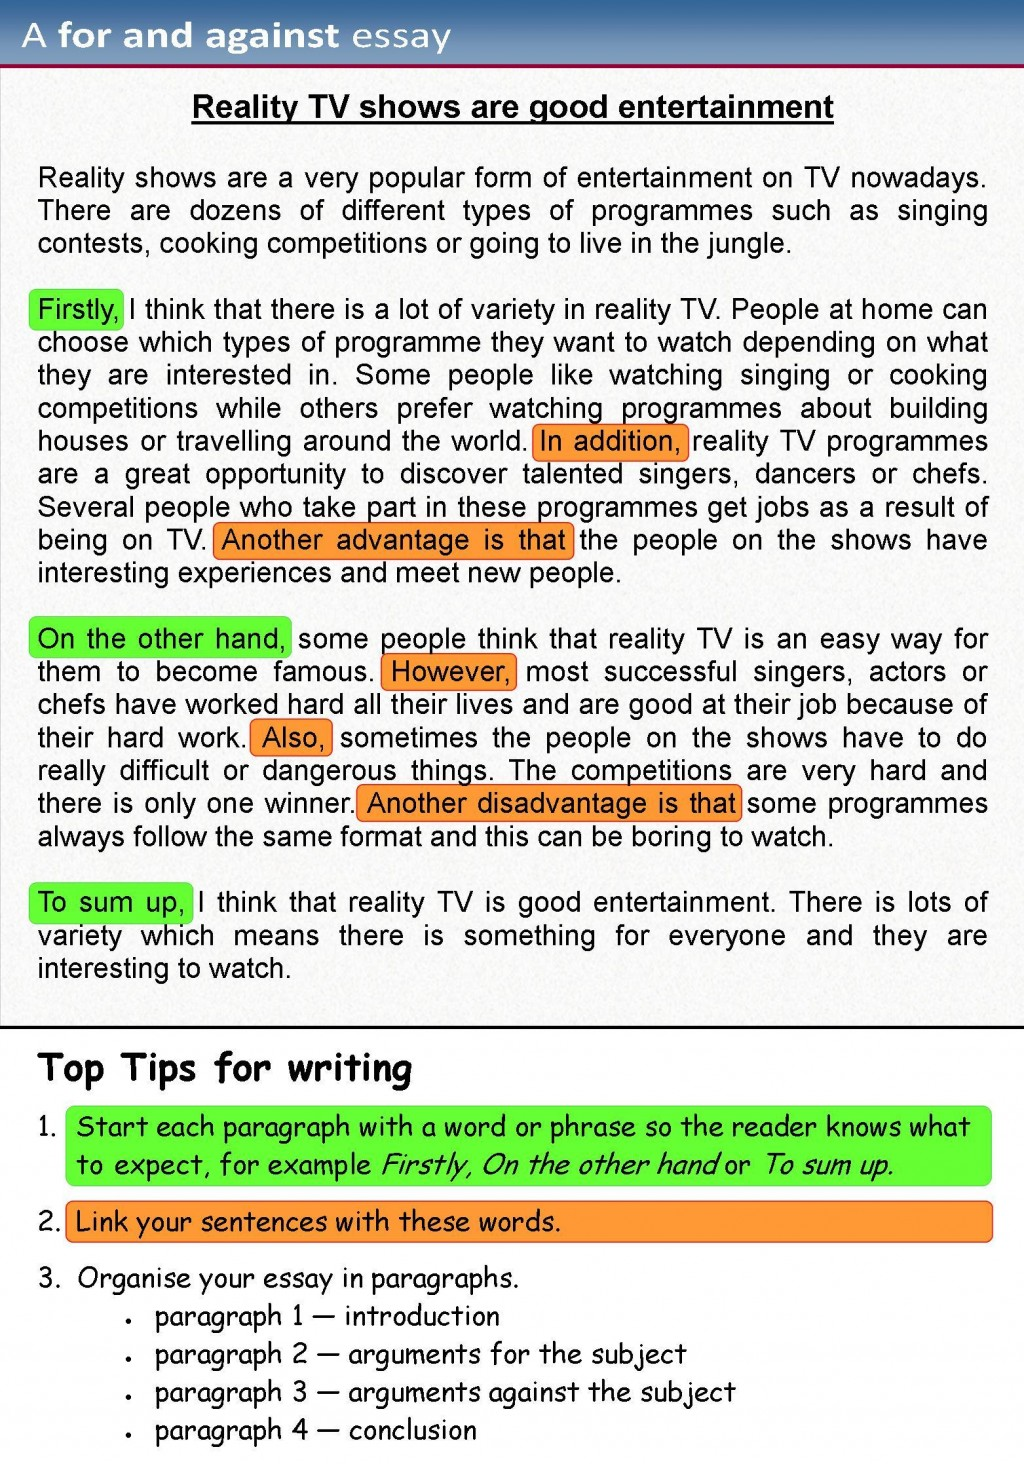 008 Fast Food Culture Essay Example About Customwriting What Is For Against Es Writing Tips Services Advantages Disadvantages University Cheap Service In Frightening Tamil India Large